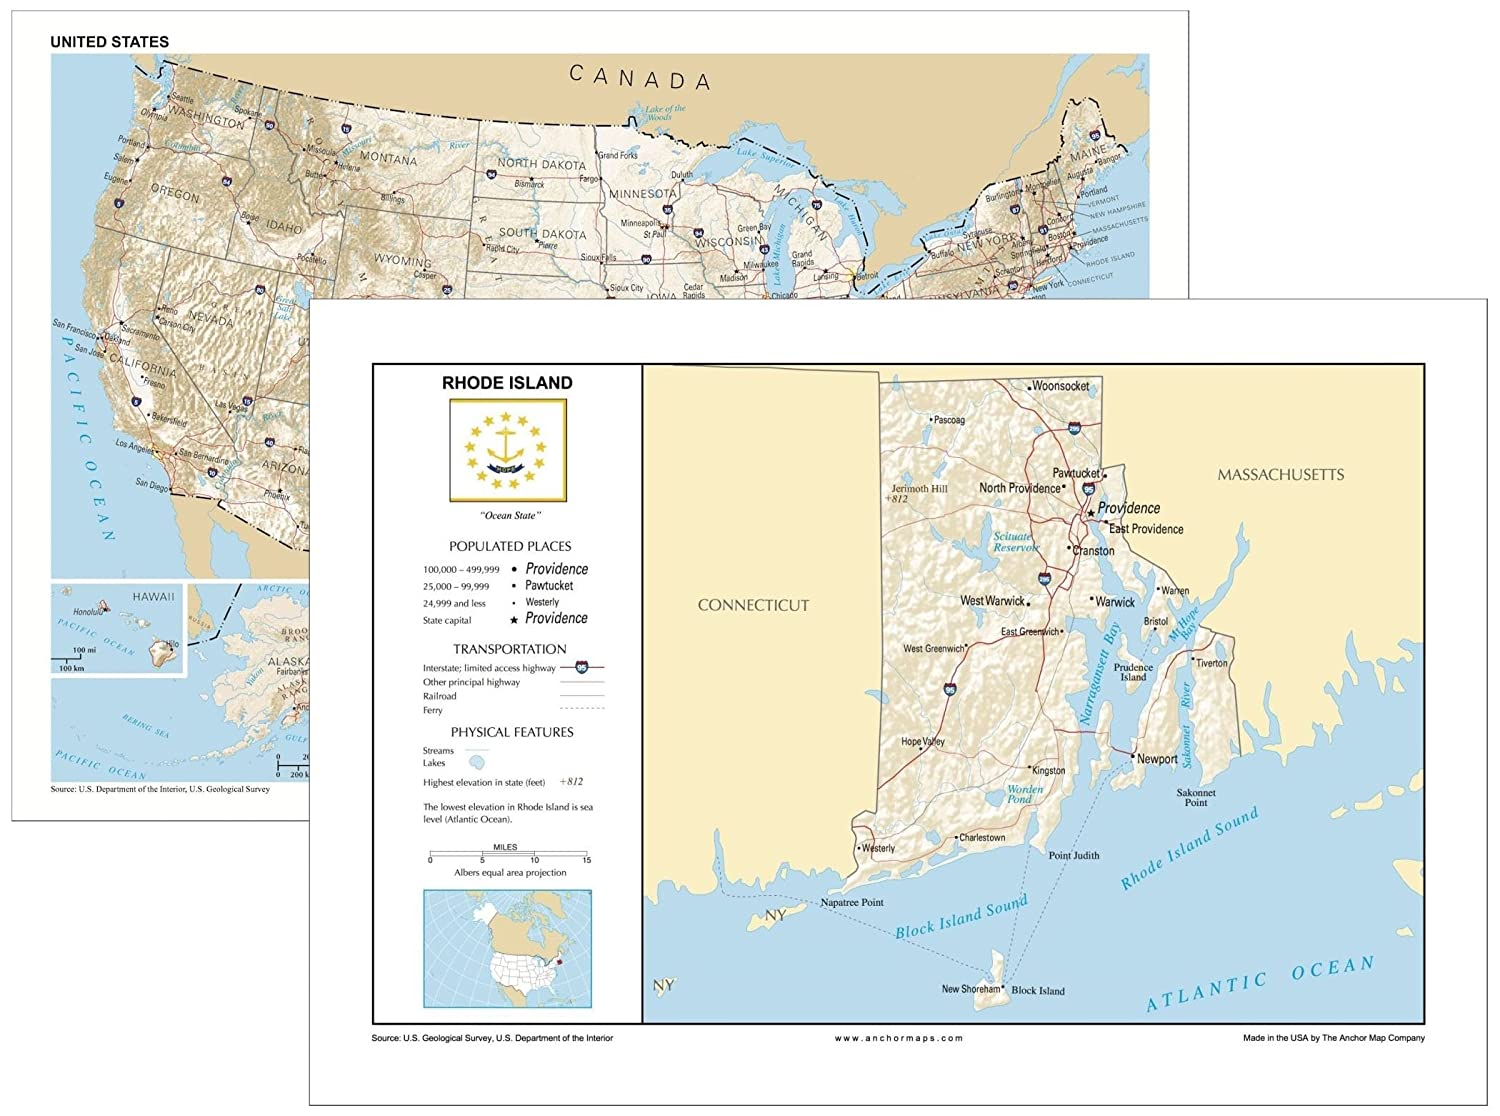 Amazon.com : 13x19 Rhode Island and 13x19 United States ...